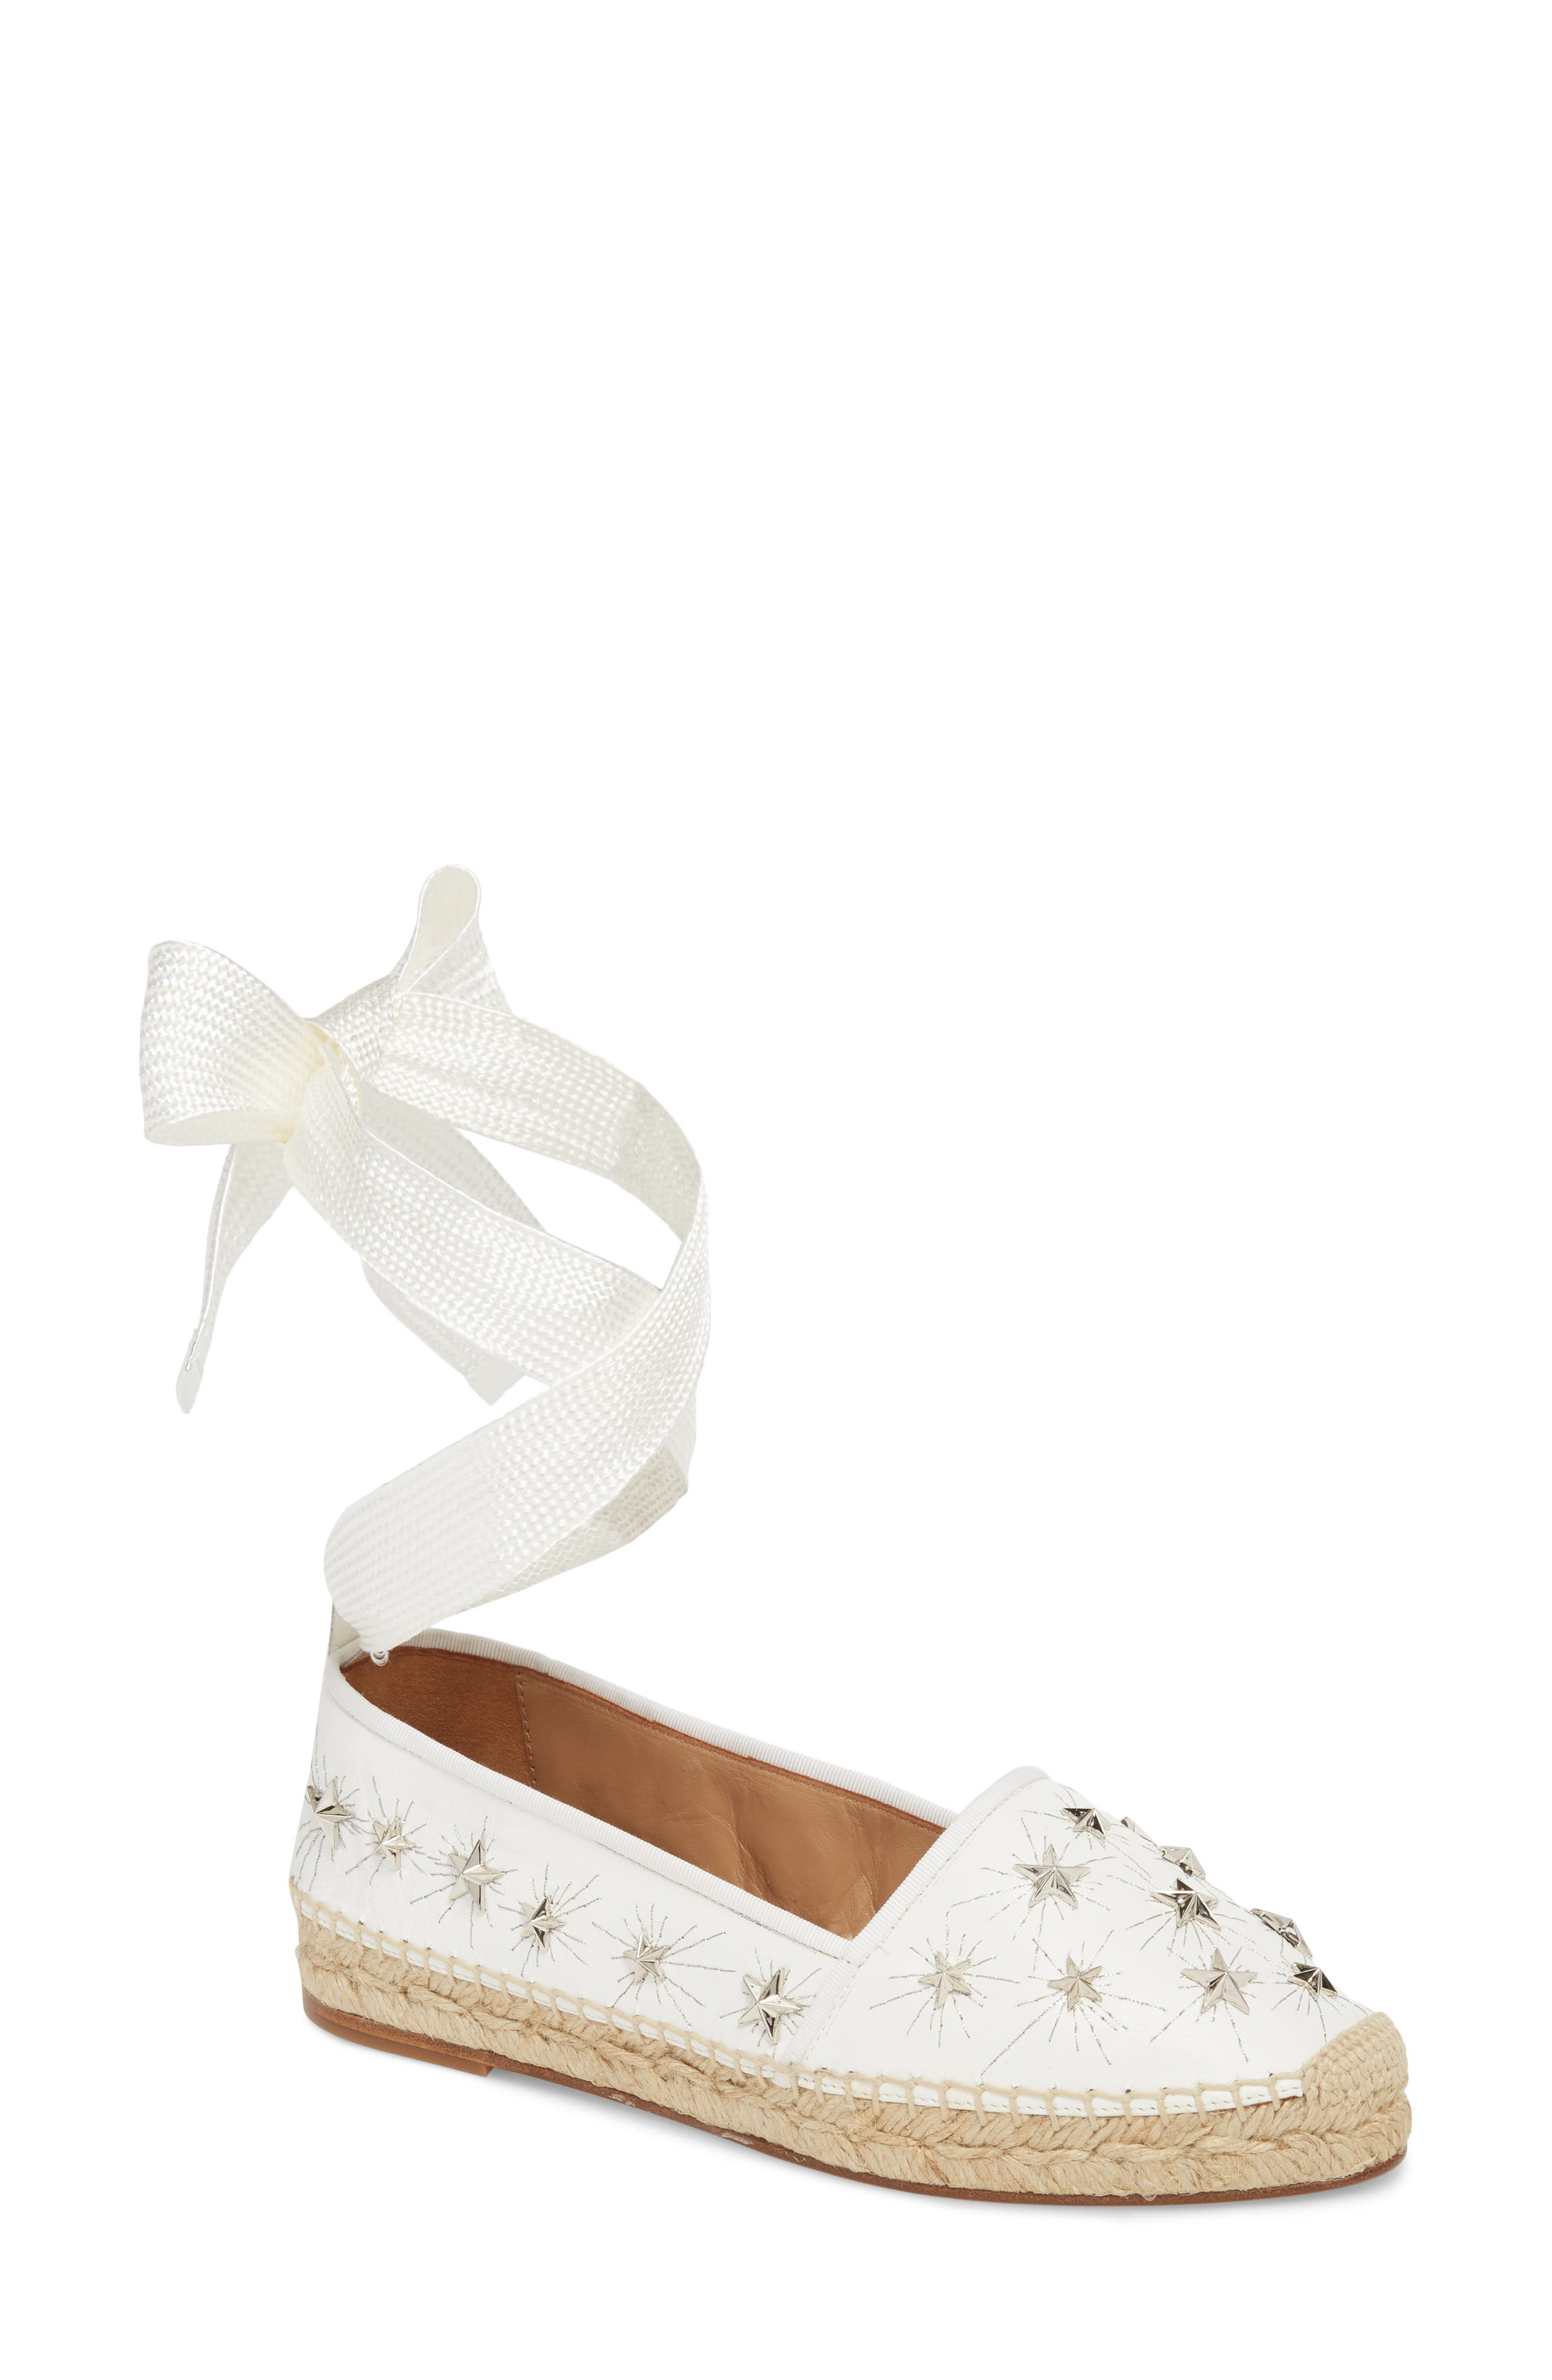 Aquazurra Cosmic Star Espadrille (Women)